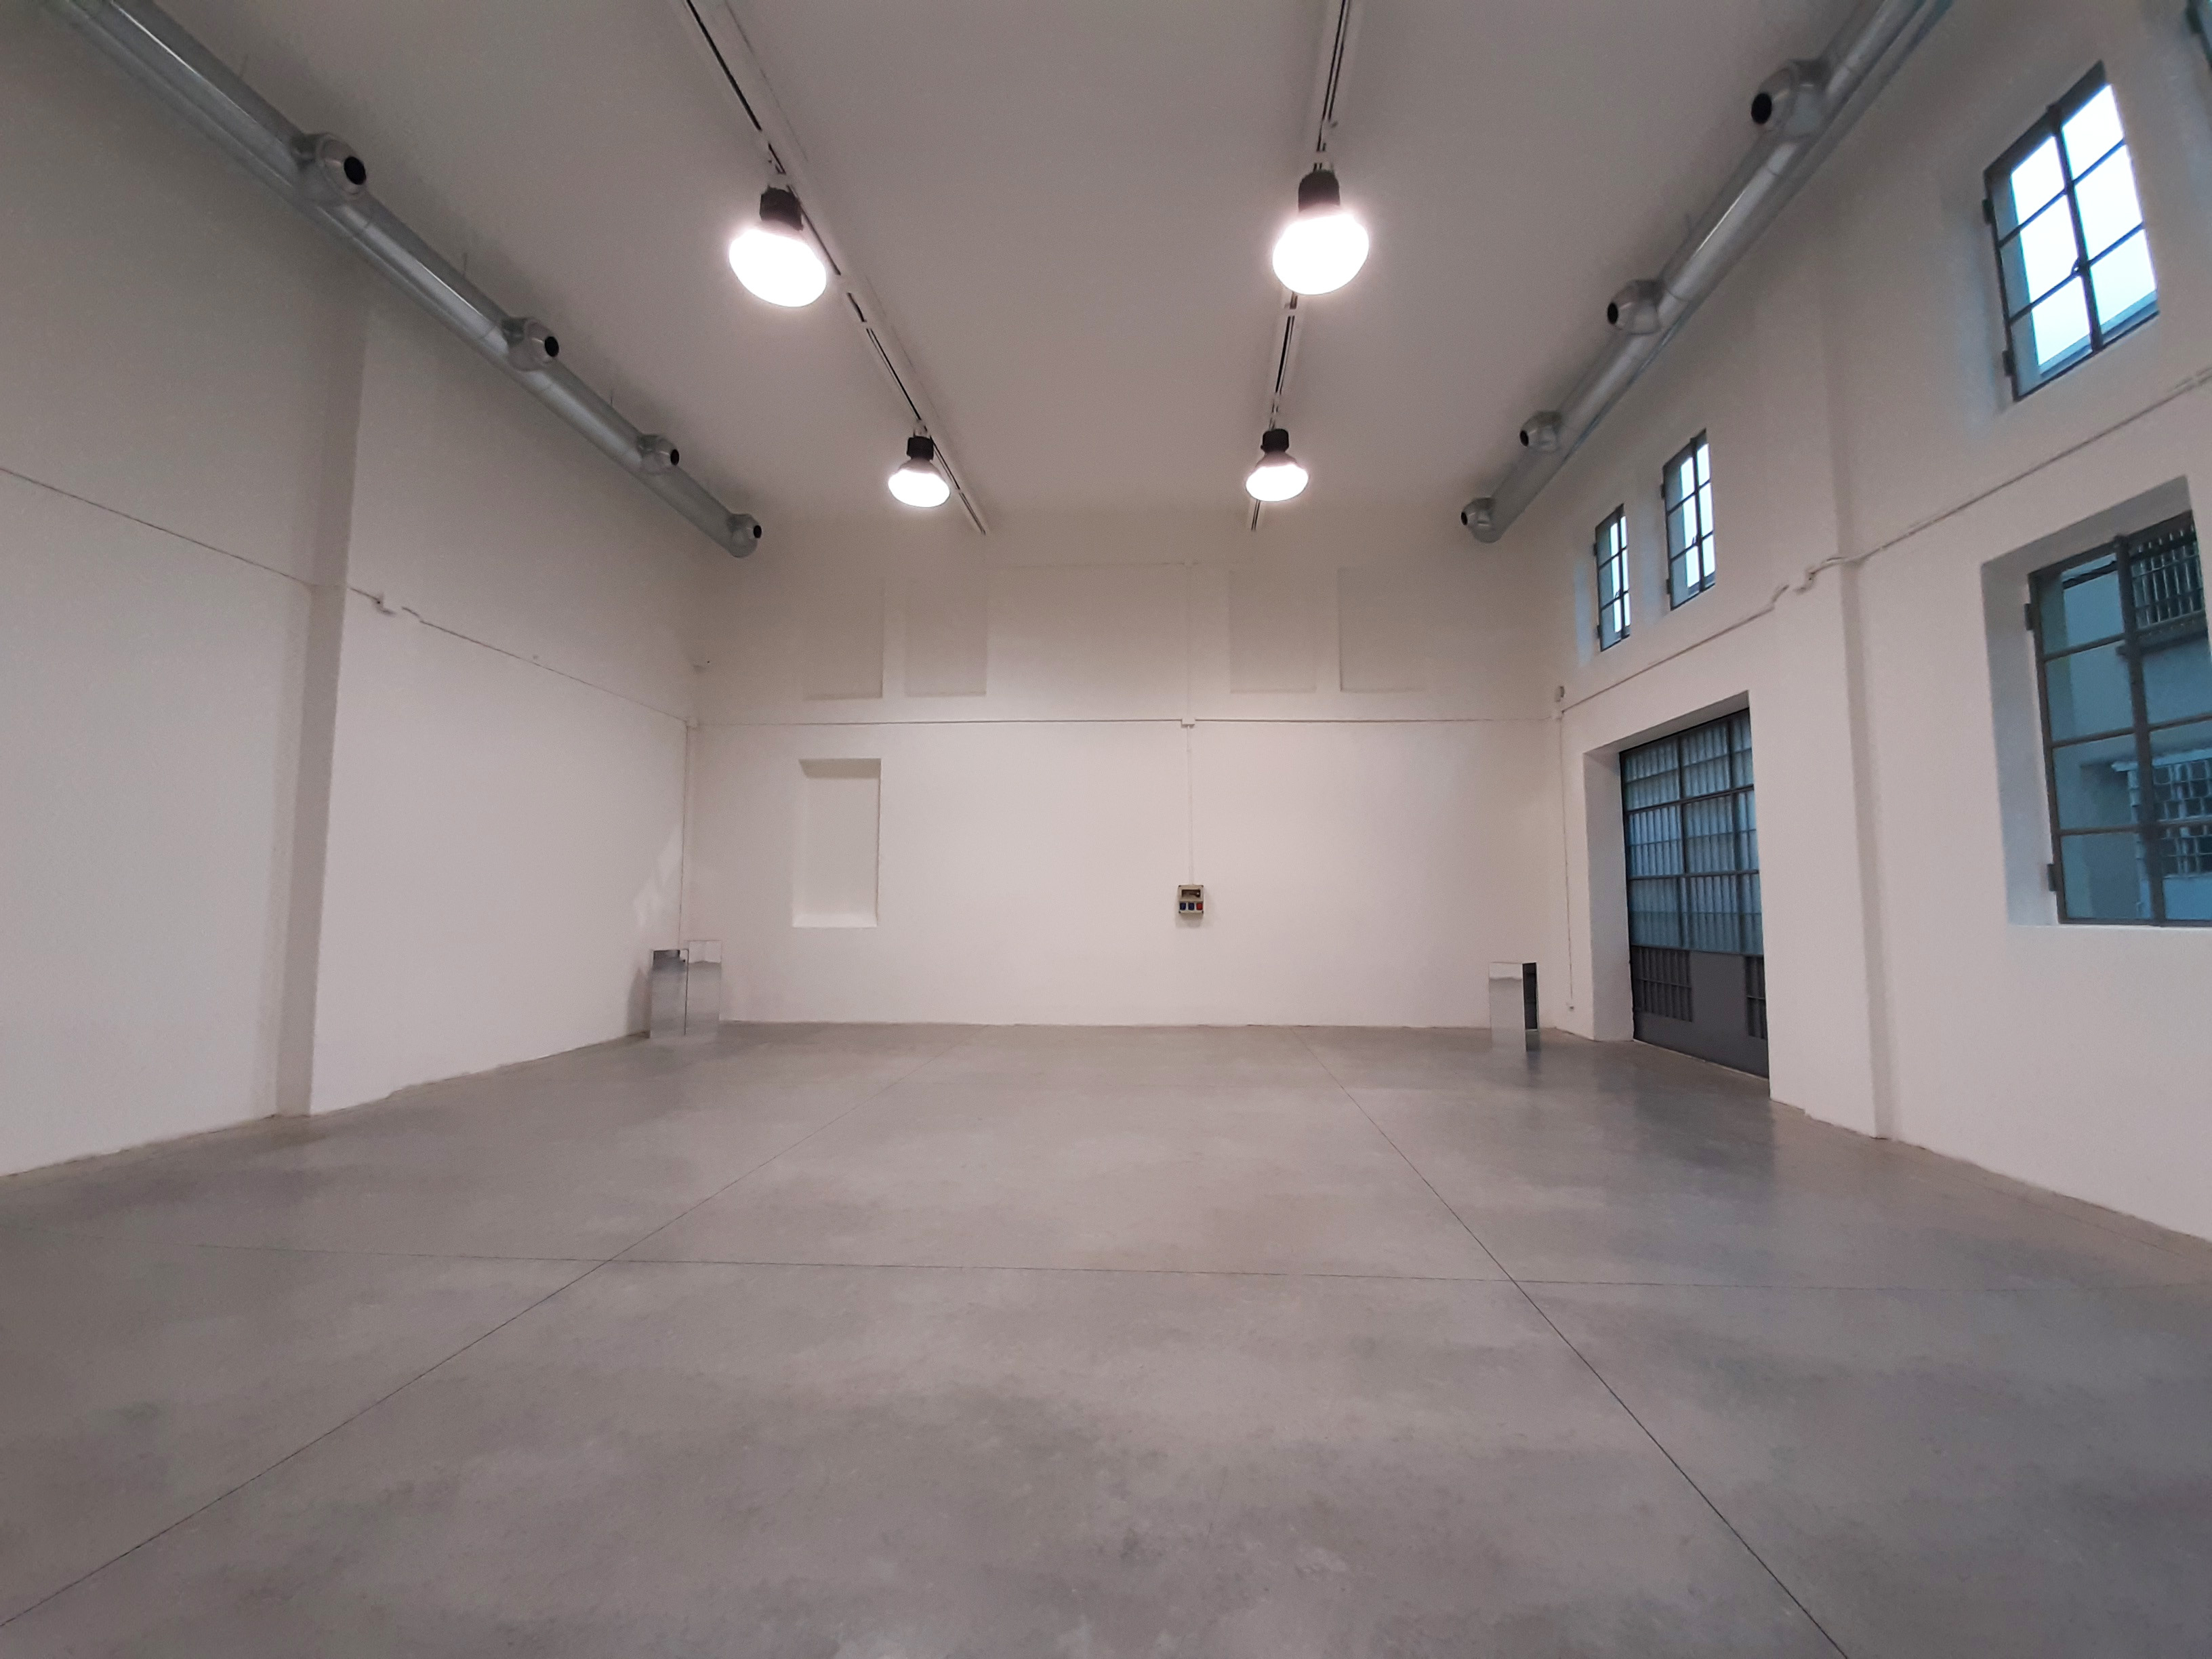 Opificio 31-Officina 31 - Open space, Spazio industriale di 180mq in Via Tortona 31 | location disallestita 1